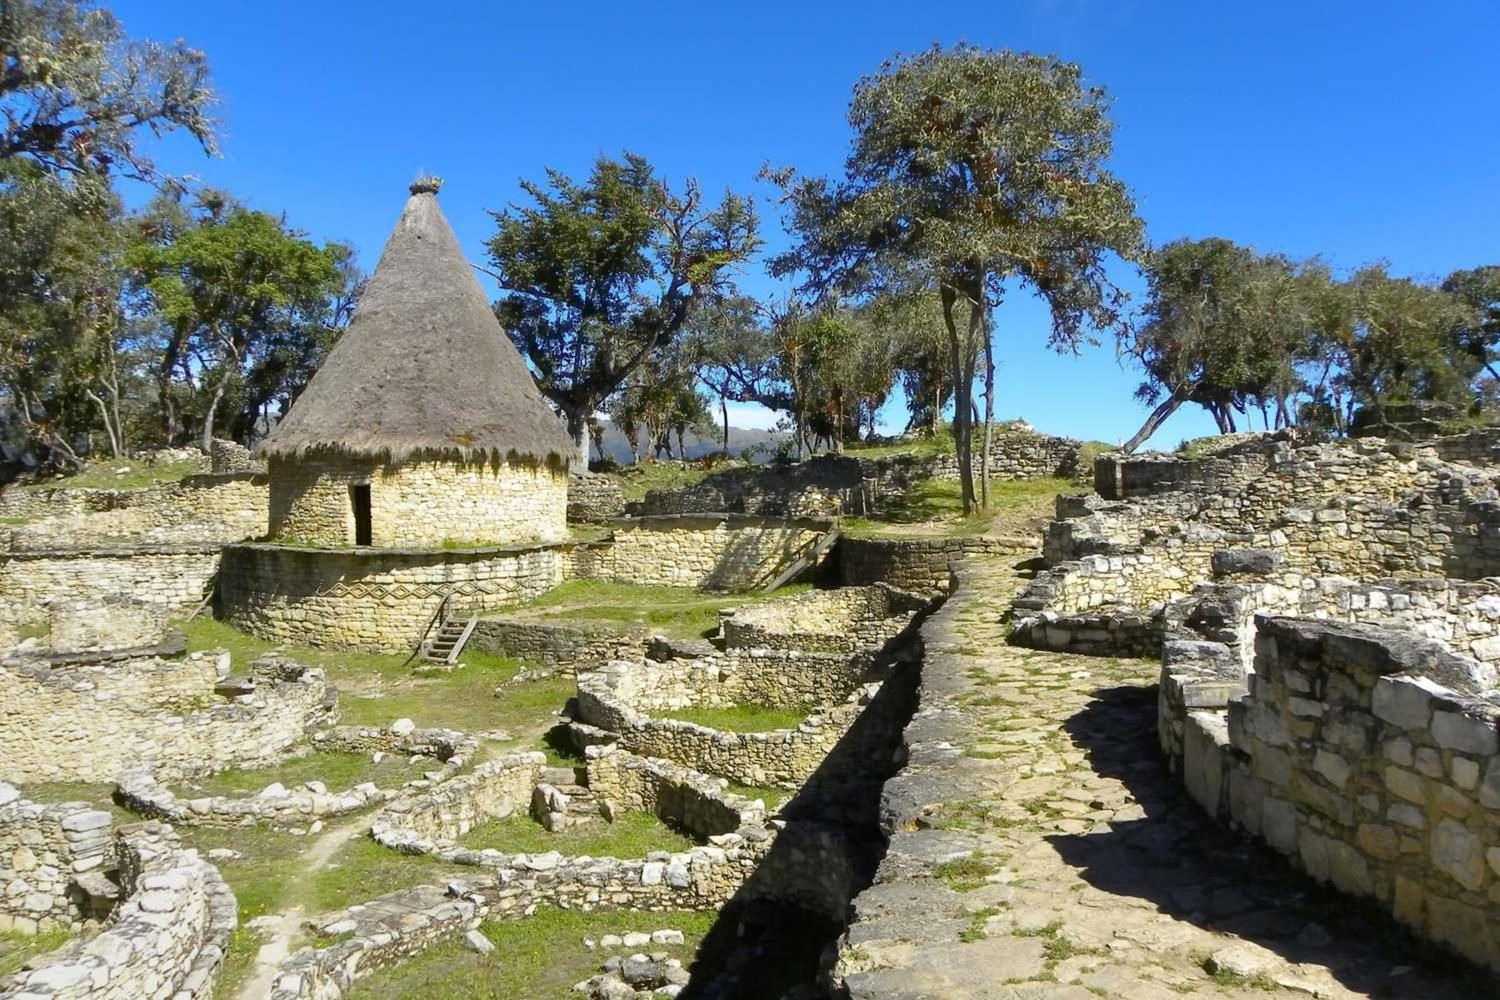 The lovely Kuelap fortress located in the Amazonas region, near Chachapoyas.